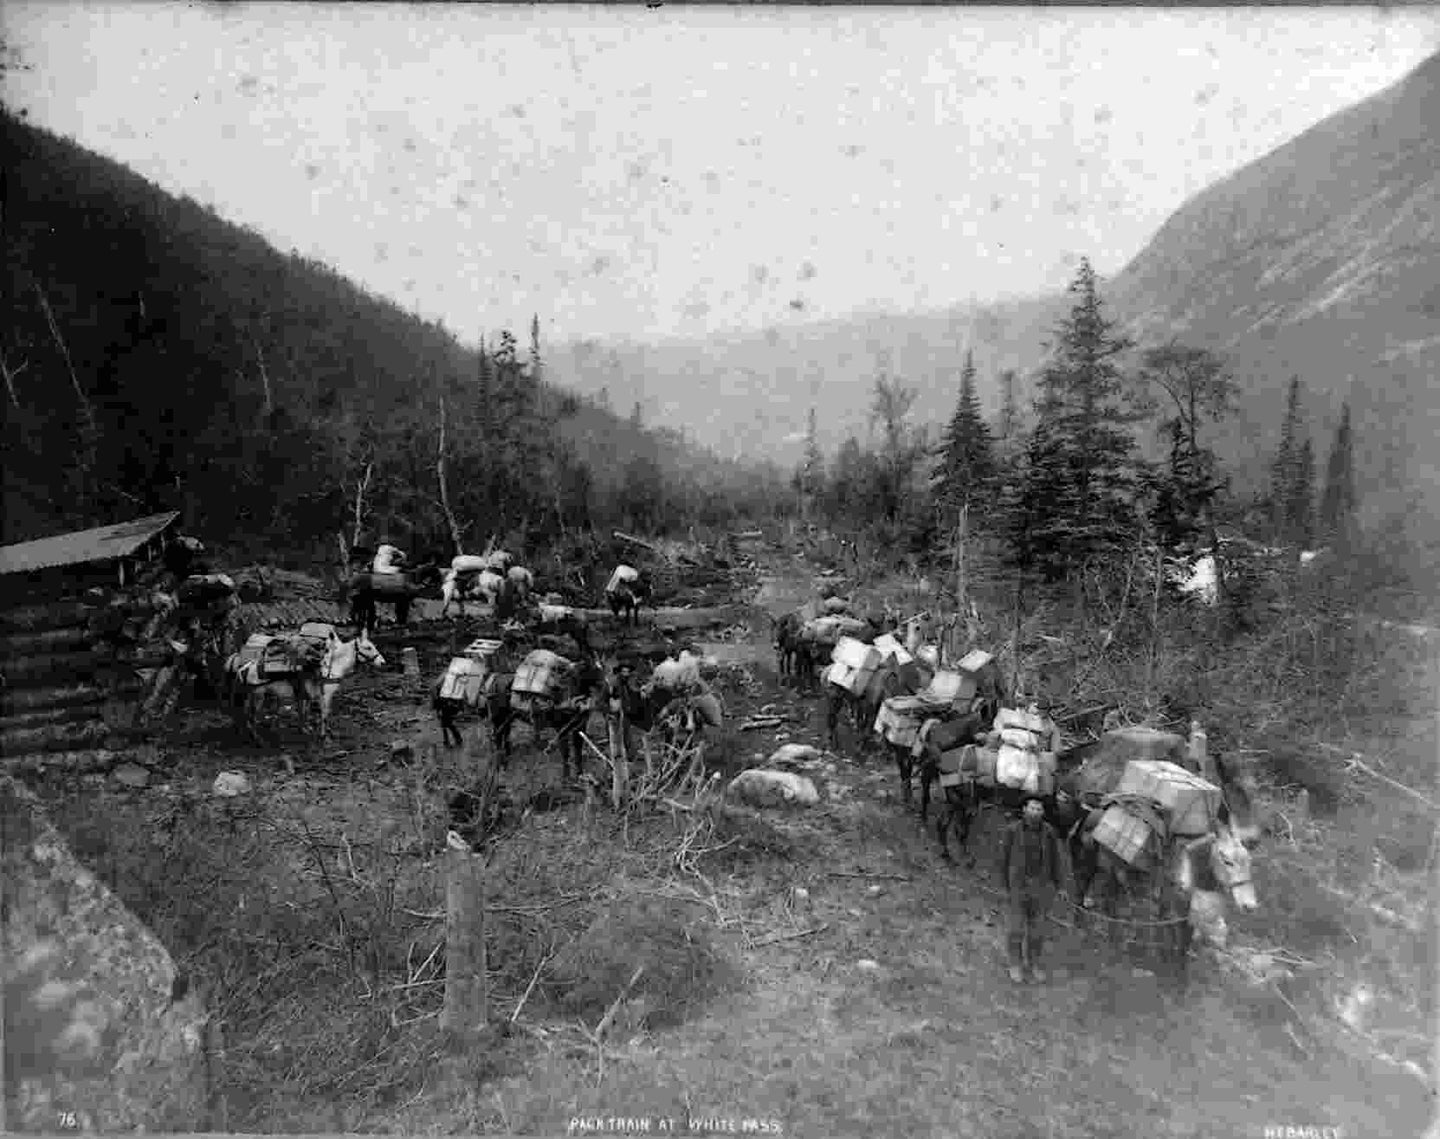 Pack Train at White Pass, c1898